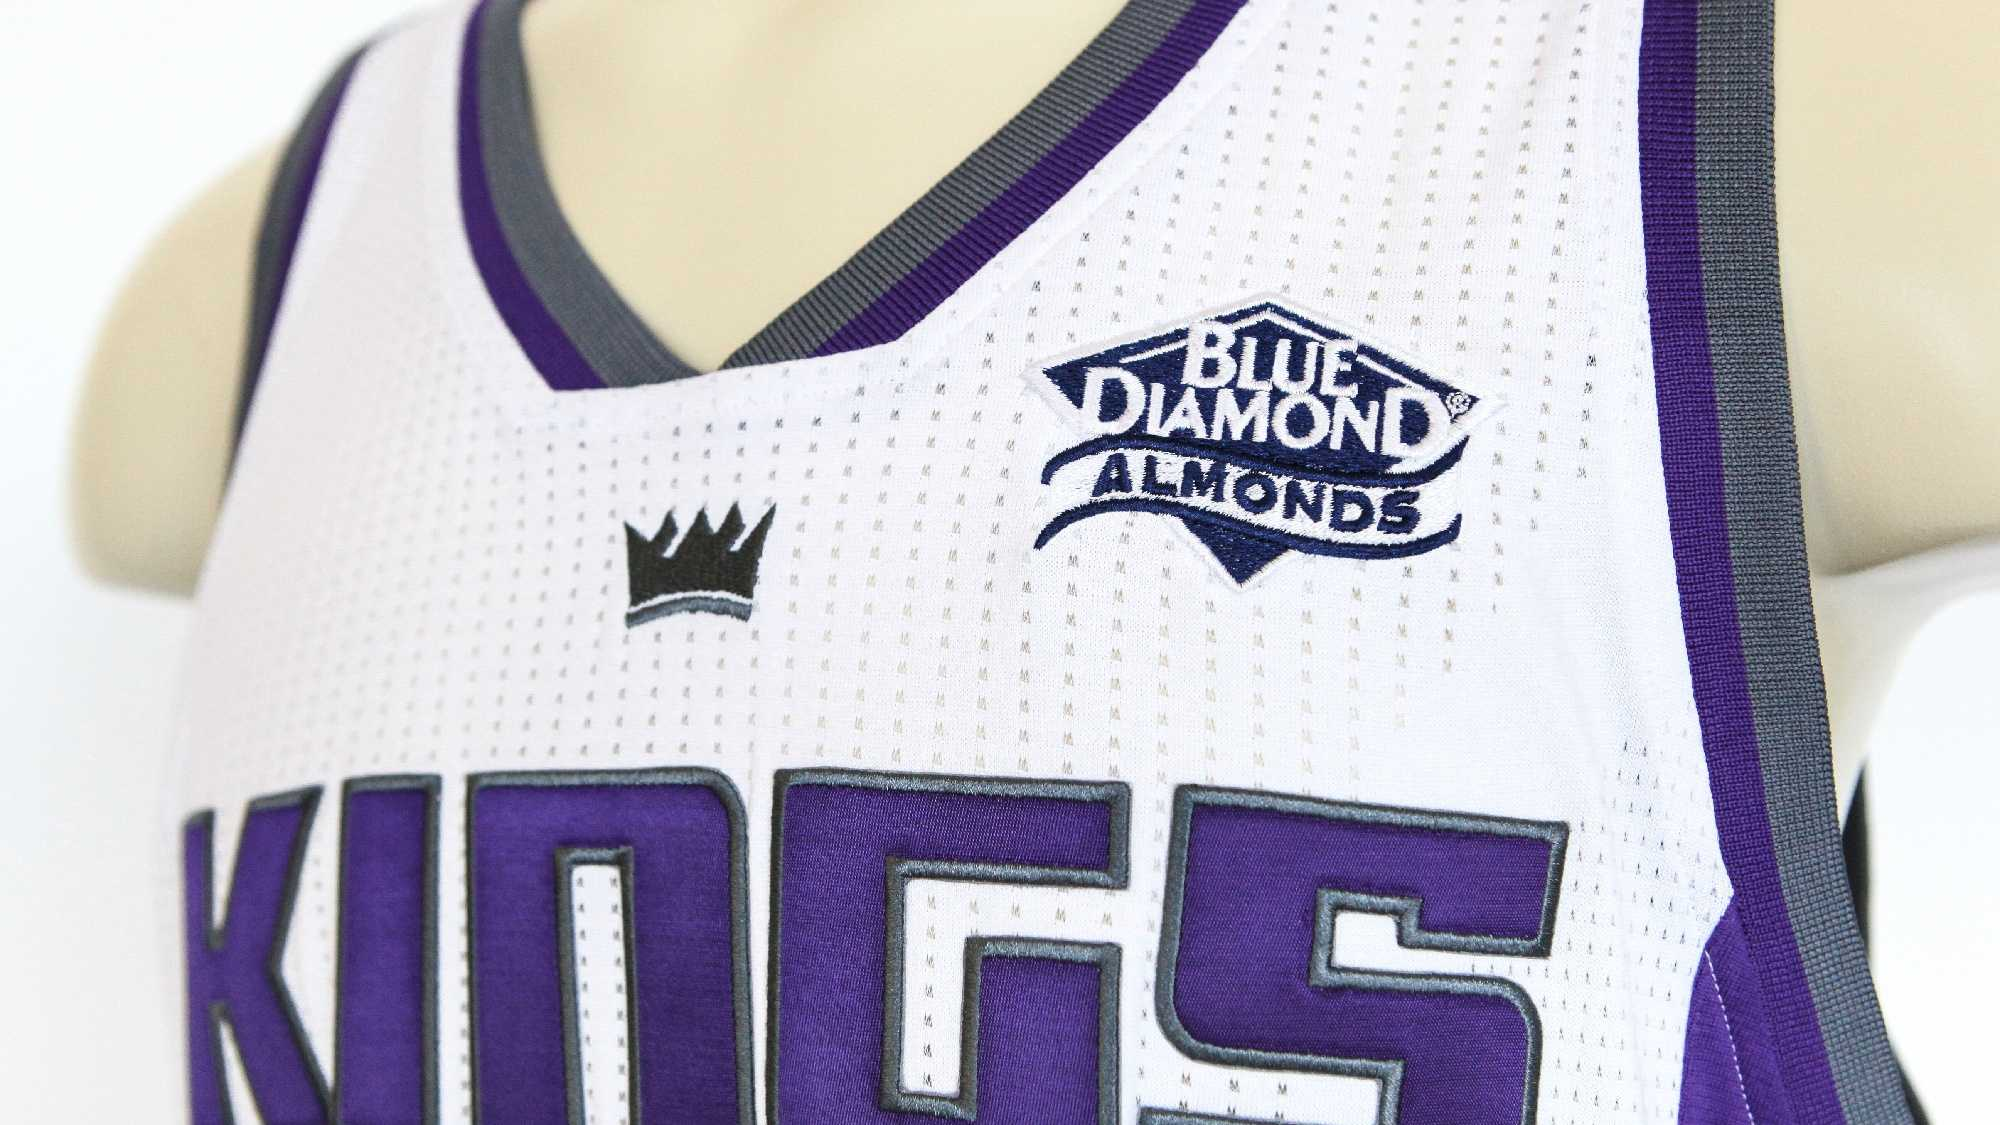 The Blue Diamond Growers patch would be added to the 2017-2018 uniform.